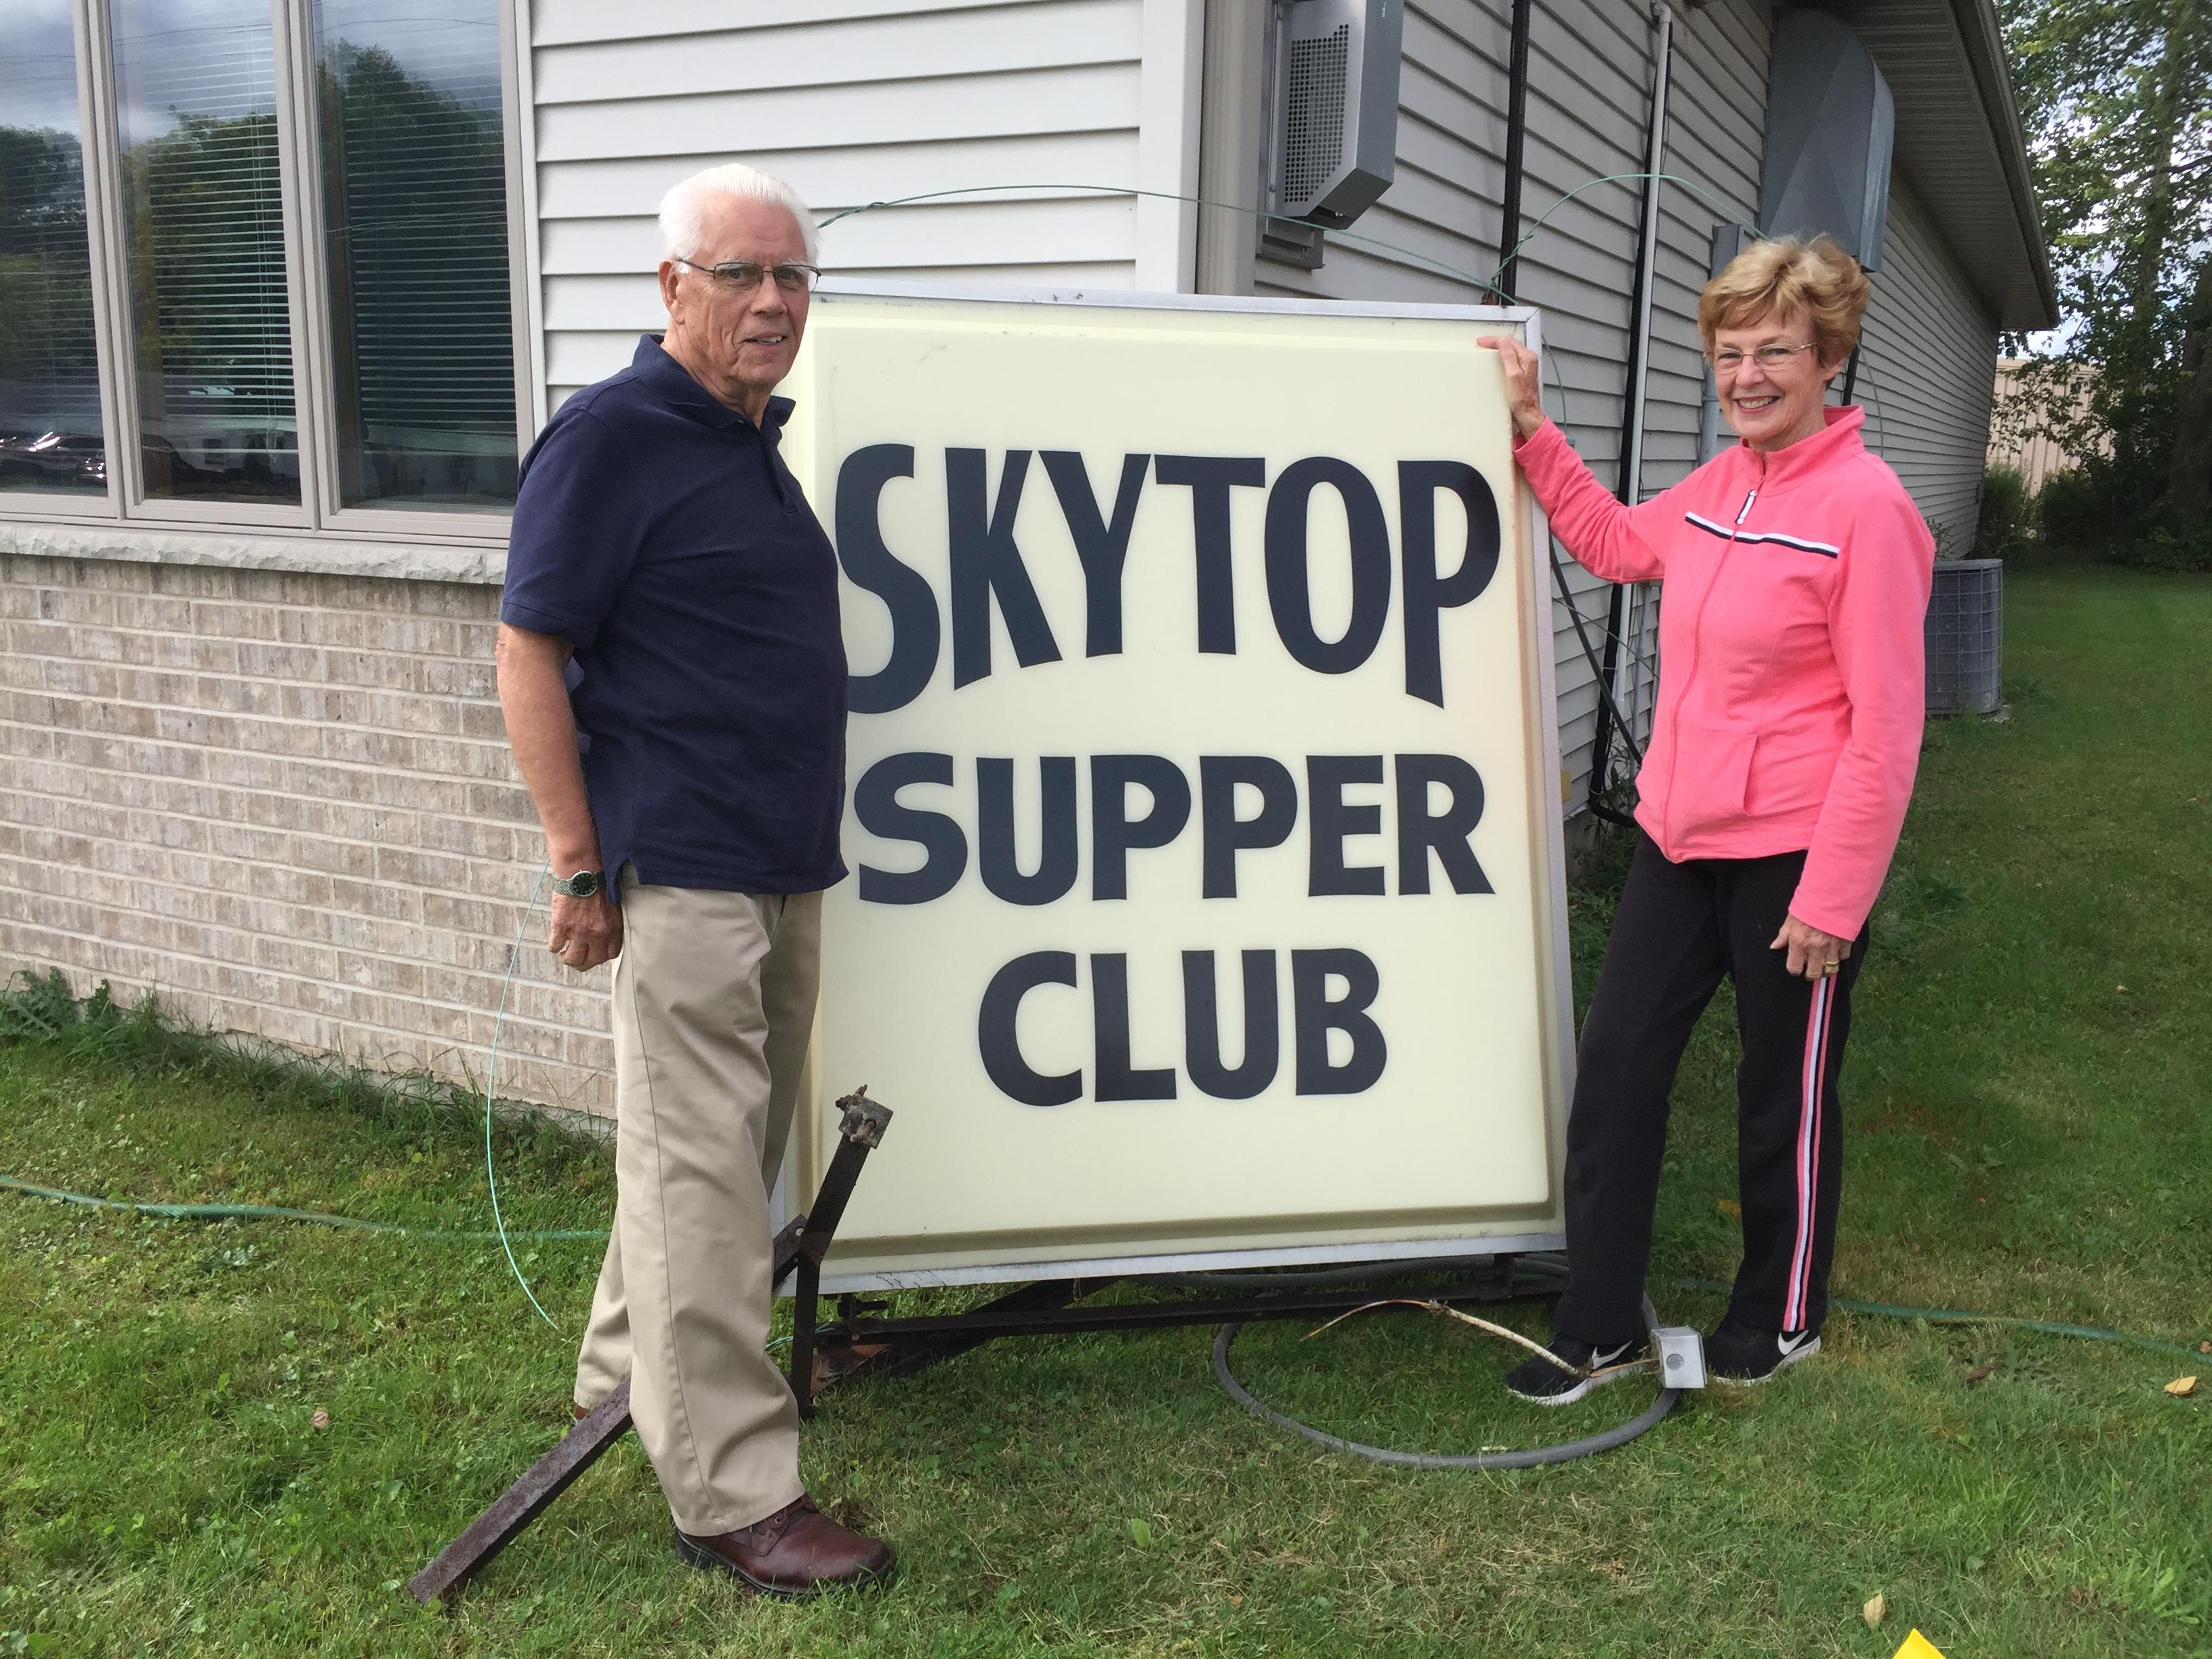 Vern Krawczyk and Judy Krawczyk pose with Sky Top Supper Club sign in Green Bay, September 6, 2017 (WLUK/Eric Peterson)